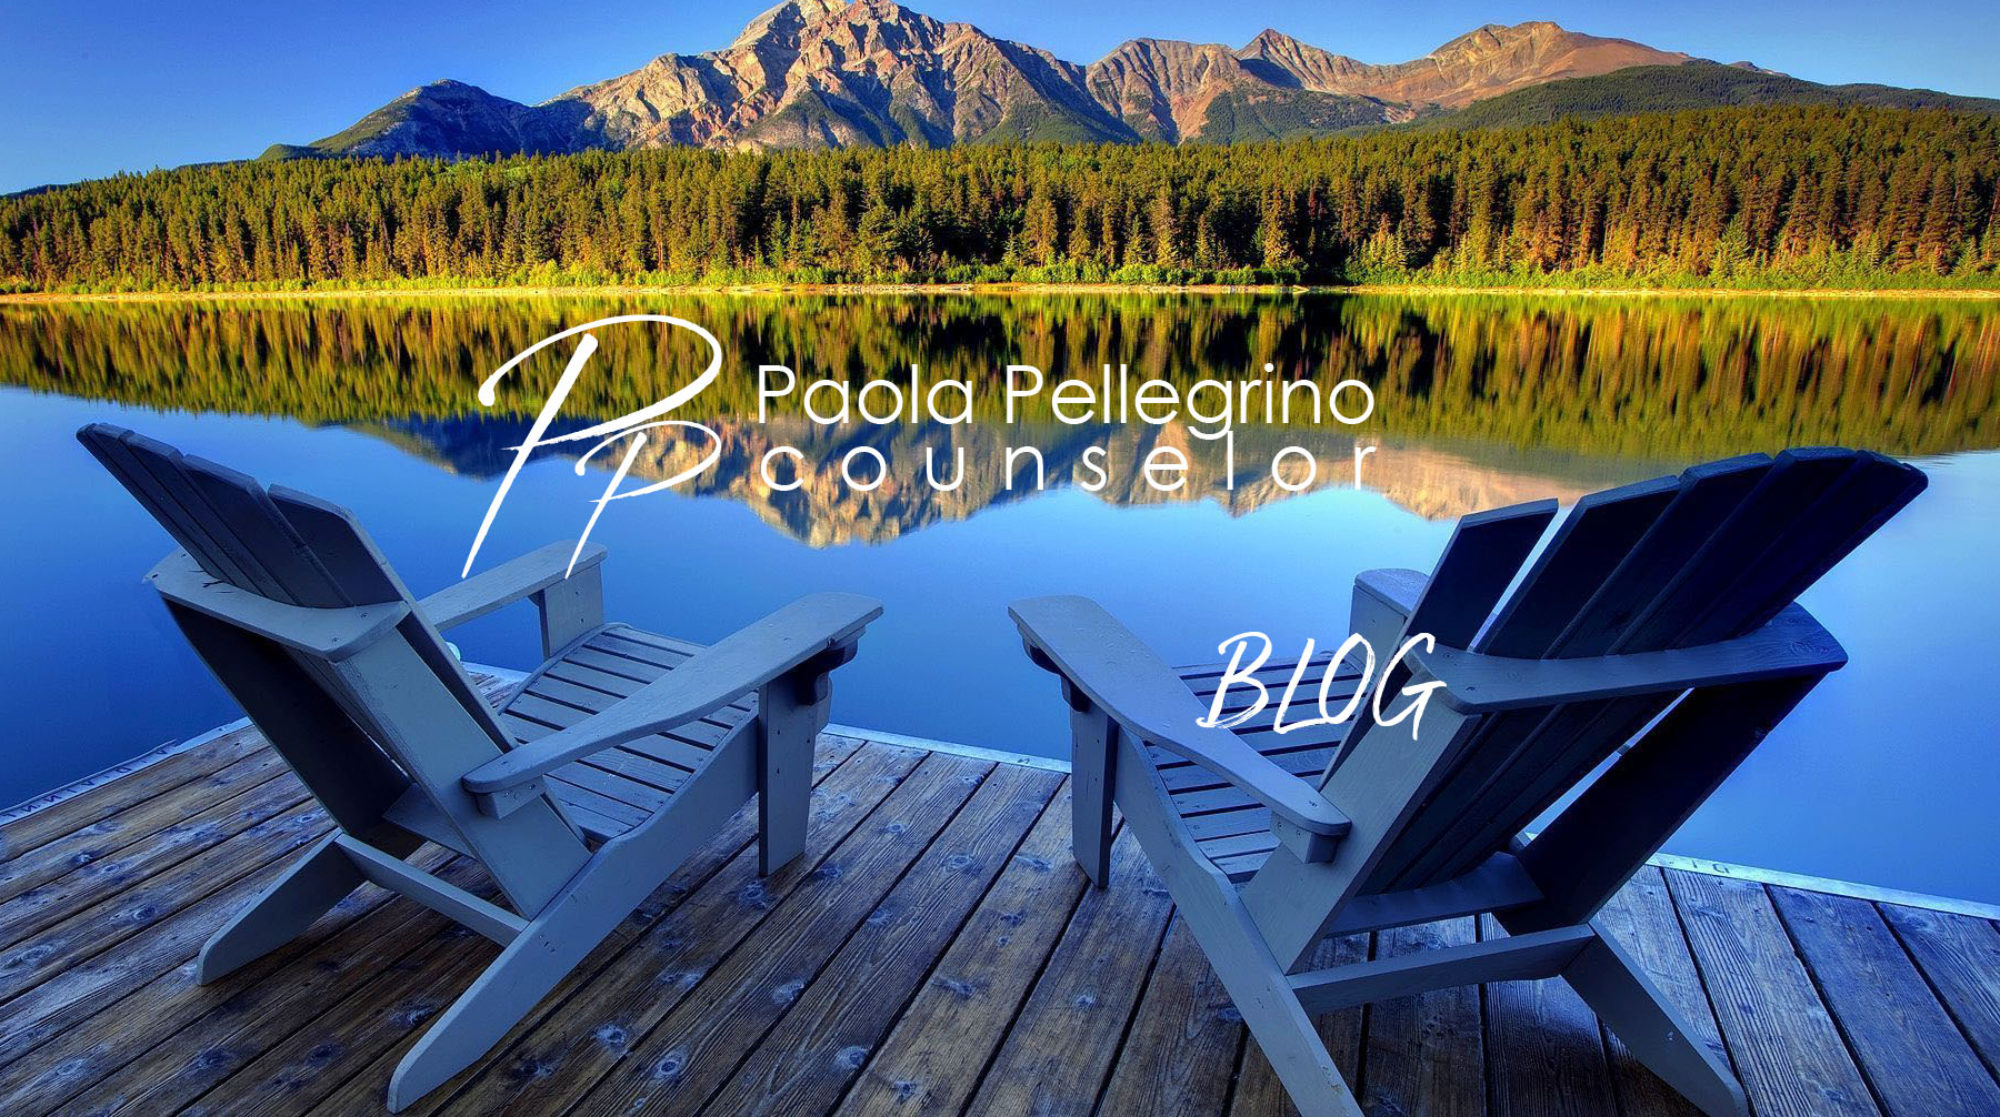 Paola Pellegrino Counselor-BLOG